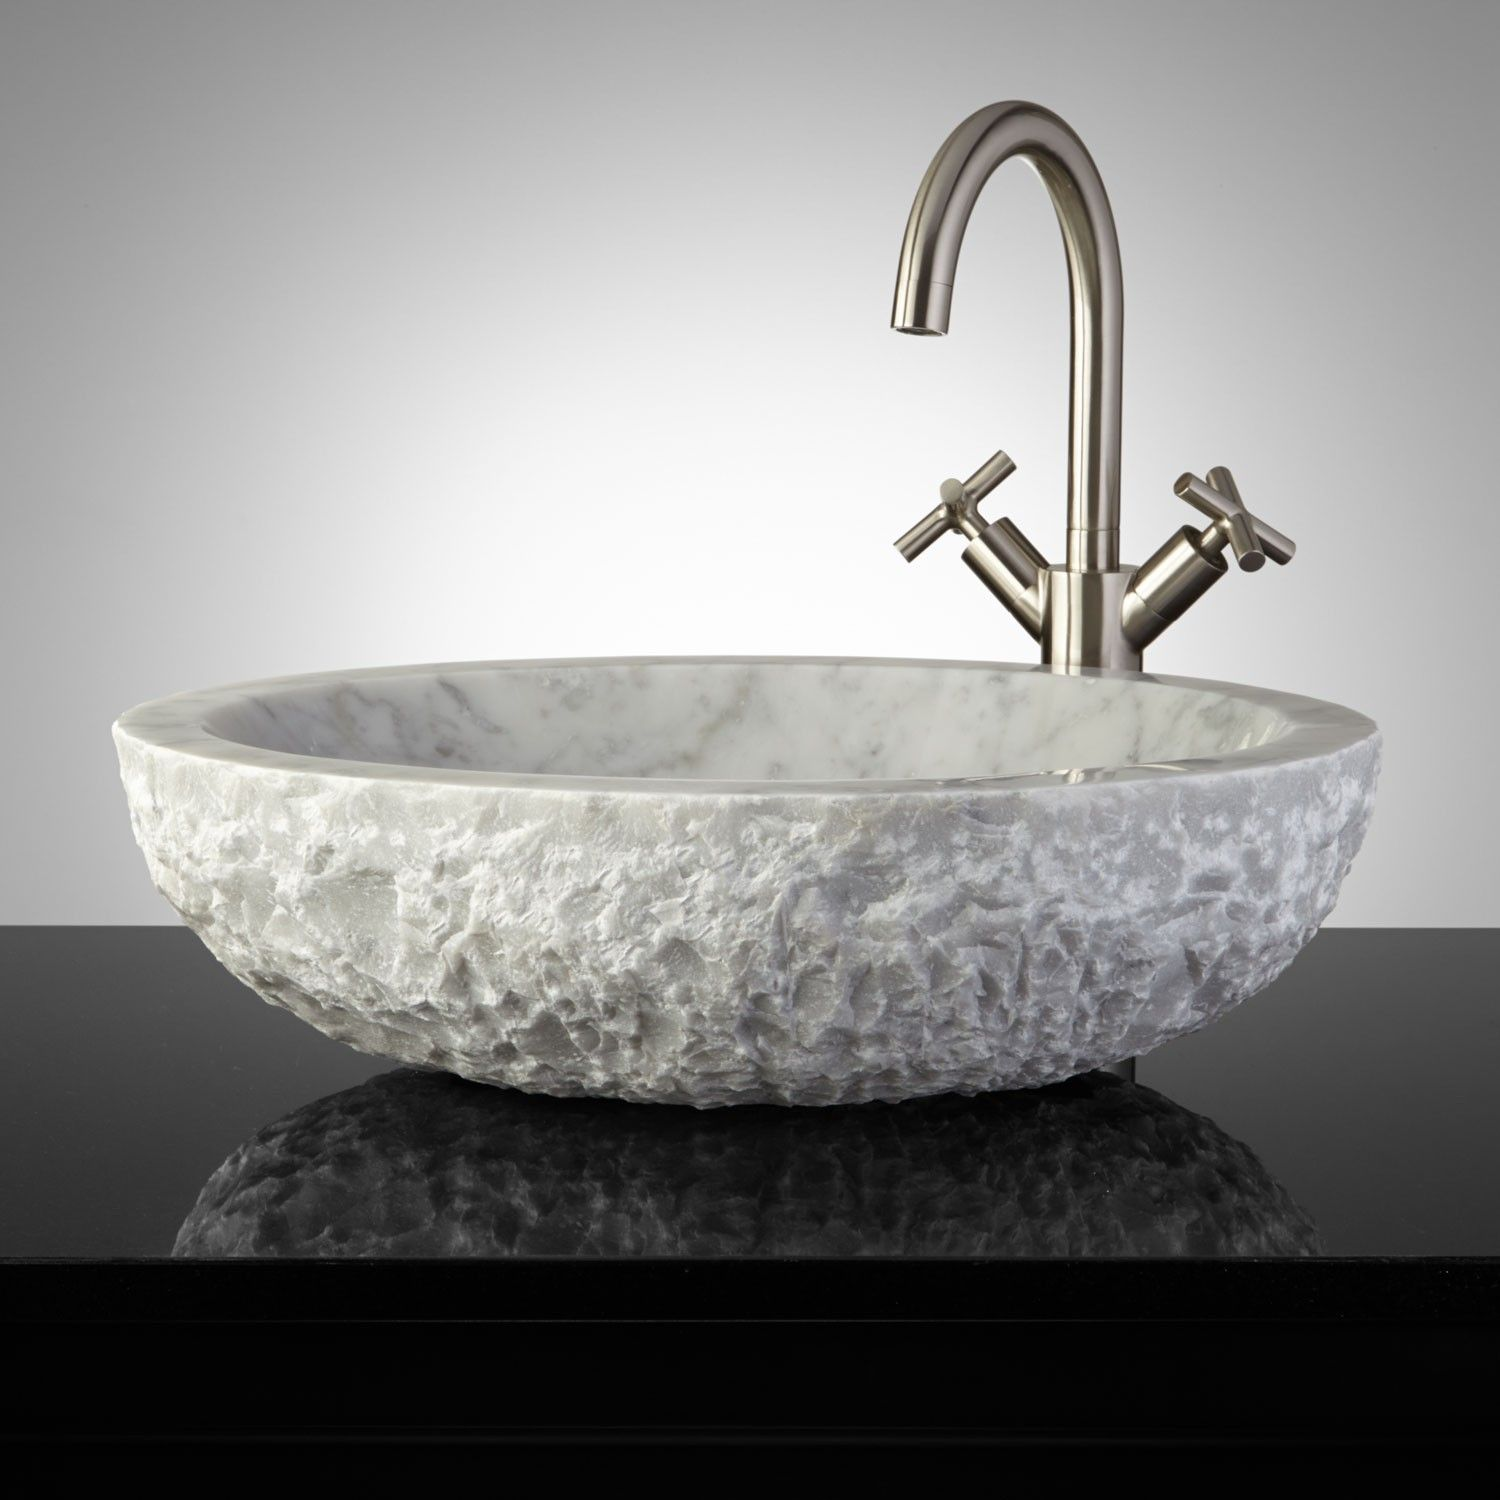 Oval Chiseled Marble Sink Available From Signature Hardware